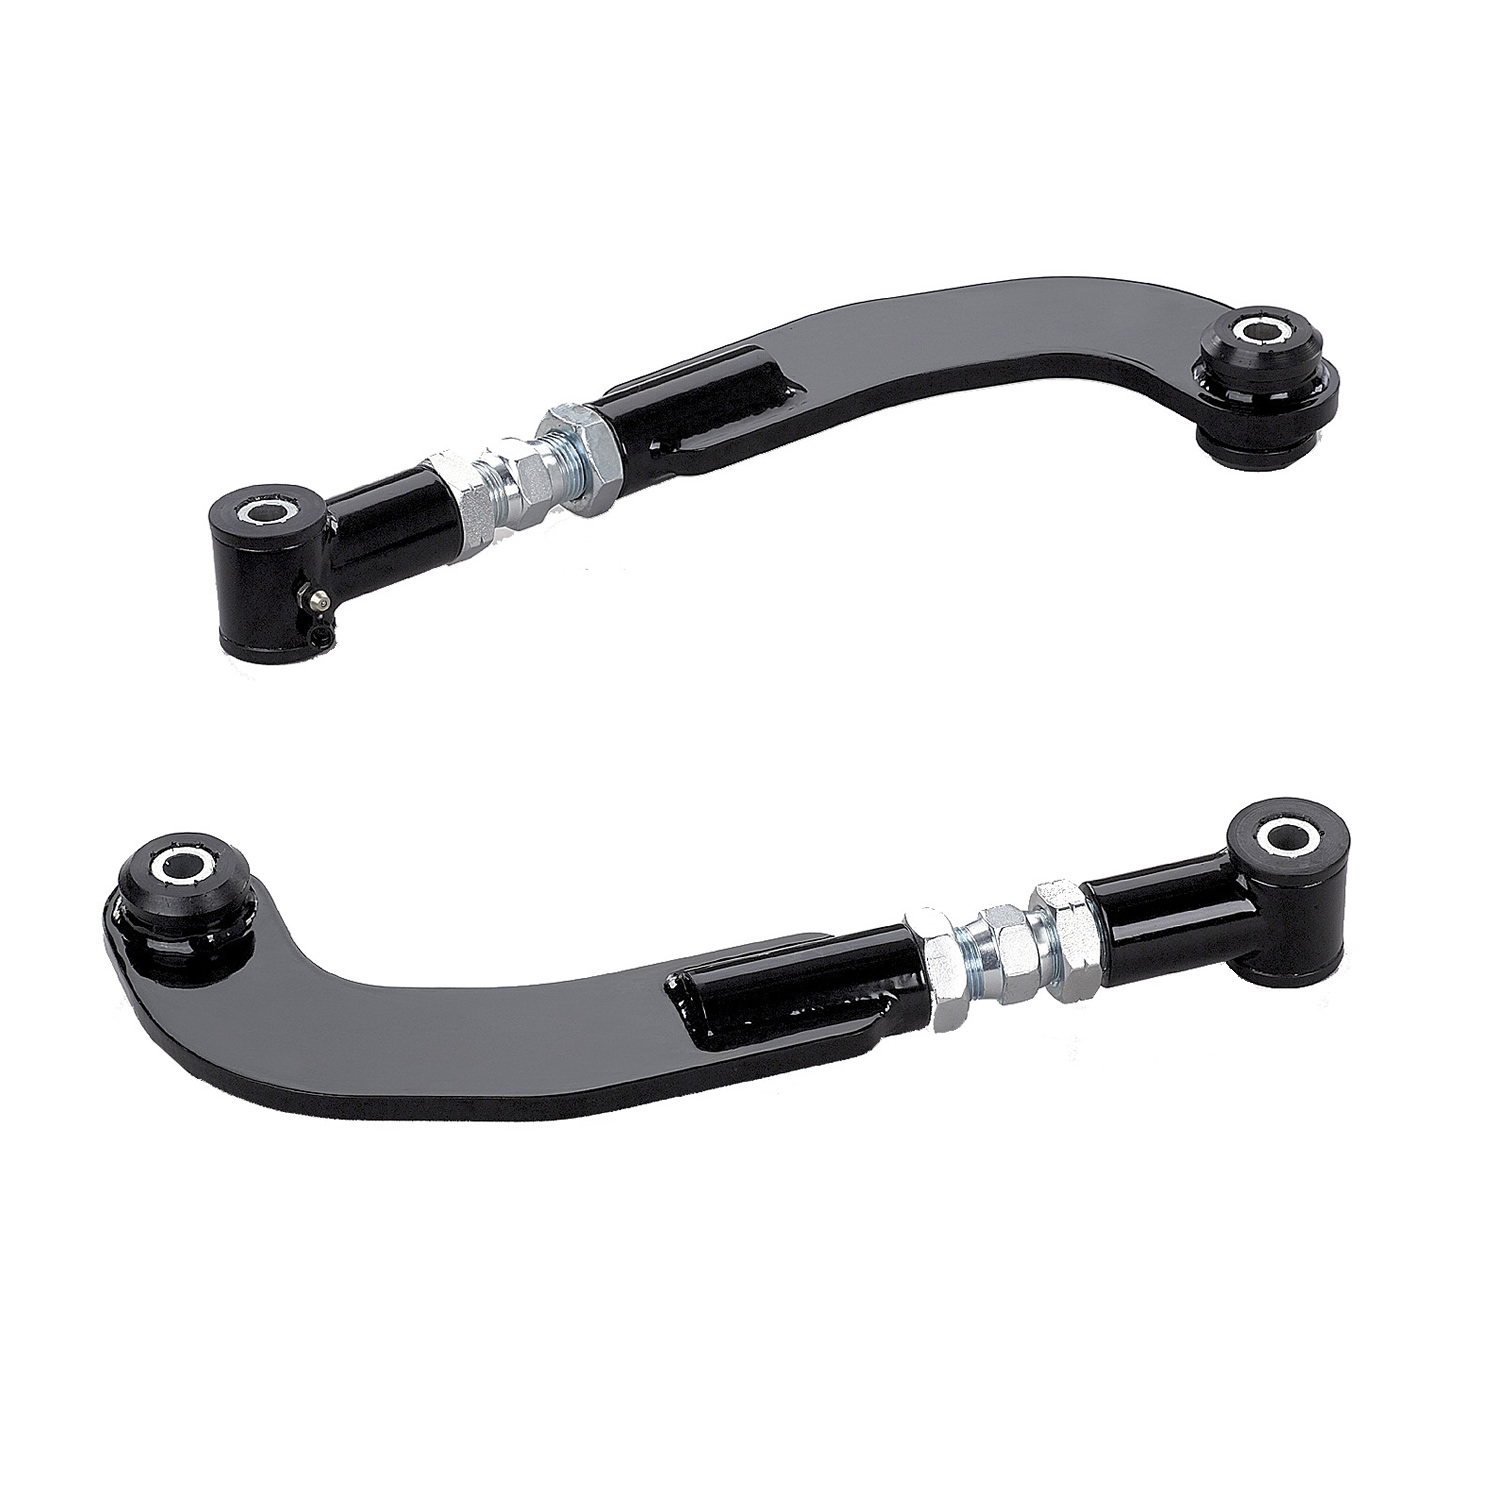 Scion TC Sport Rear Camber Links from Hotchkis Sport Suspension